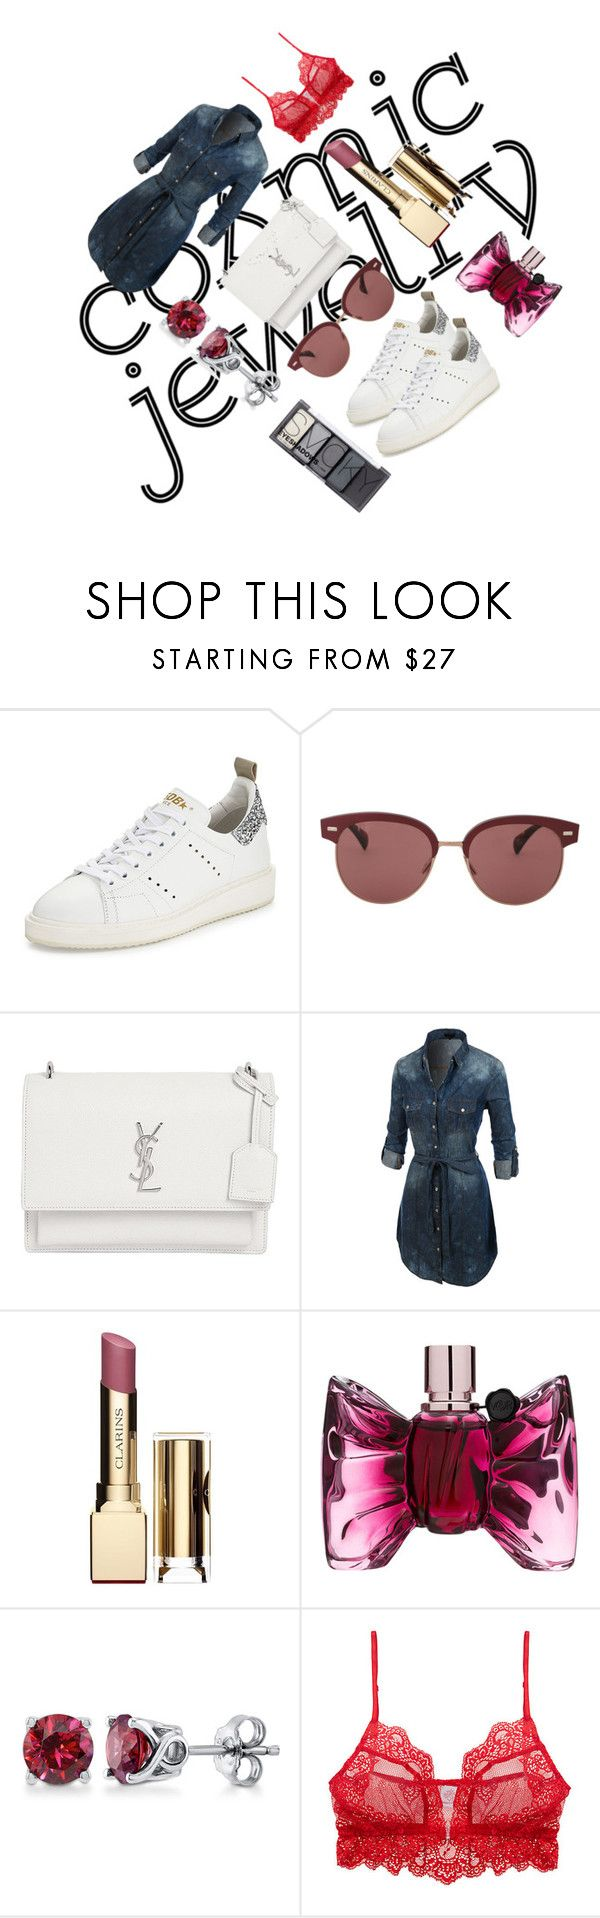 """Publicly reservation"" by ergulso ❤ liked on Polyvore featuring Golden Goose, Oliver Peoples, Yves Saint Laurent, LE3NO, Clarins, Viktor & Rolf, BERRICLE, Only Hearts and H&M"